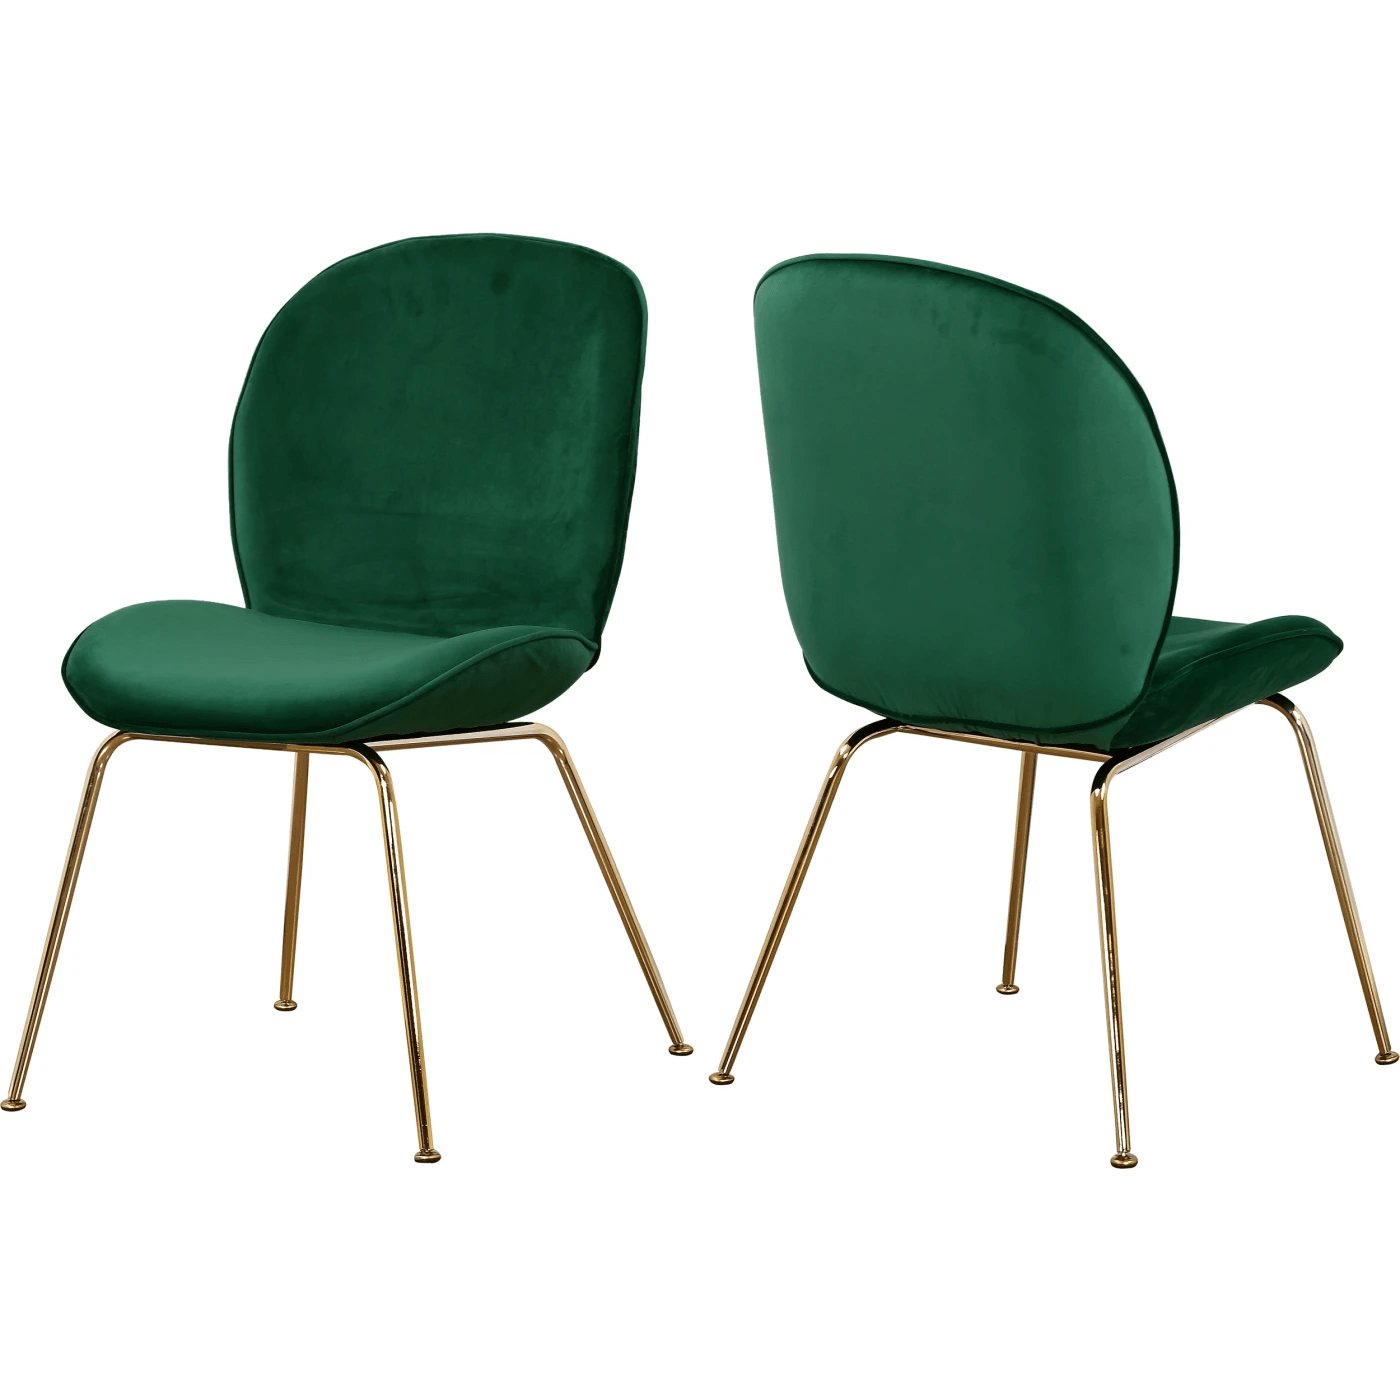 Green Velvet Dining Chairs Meridian Paris Green Velvet Dining Chair Set Of 2